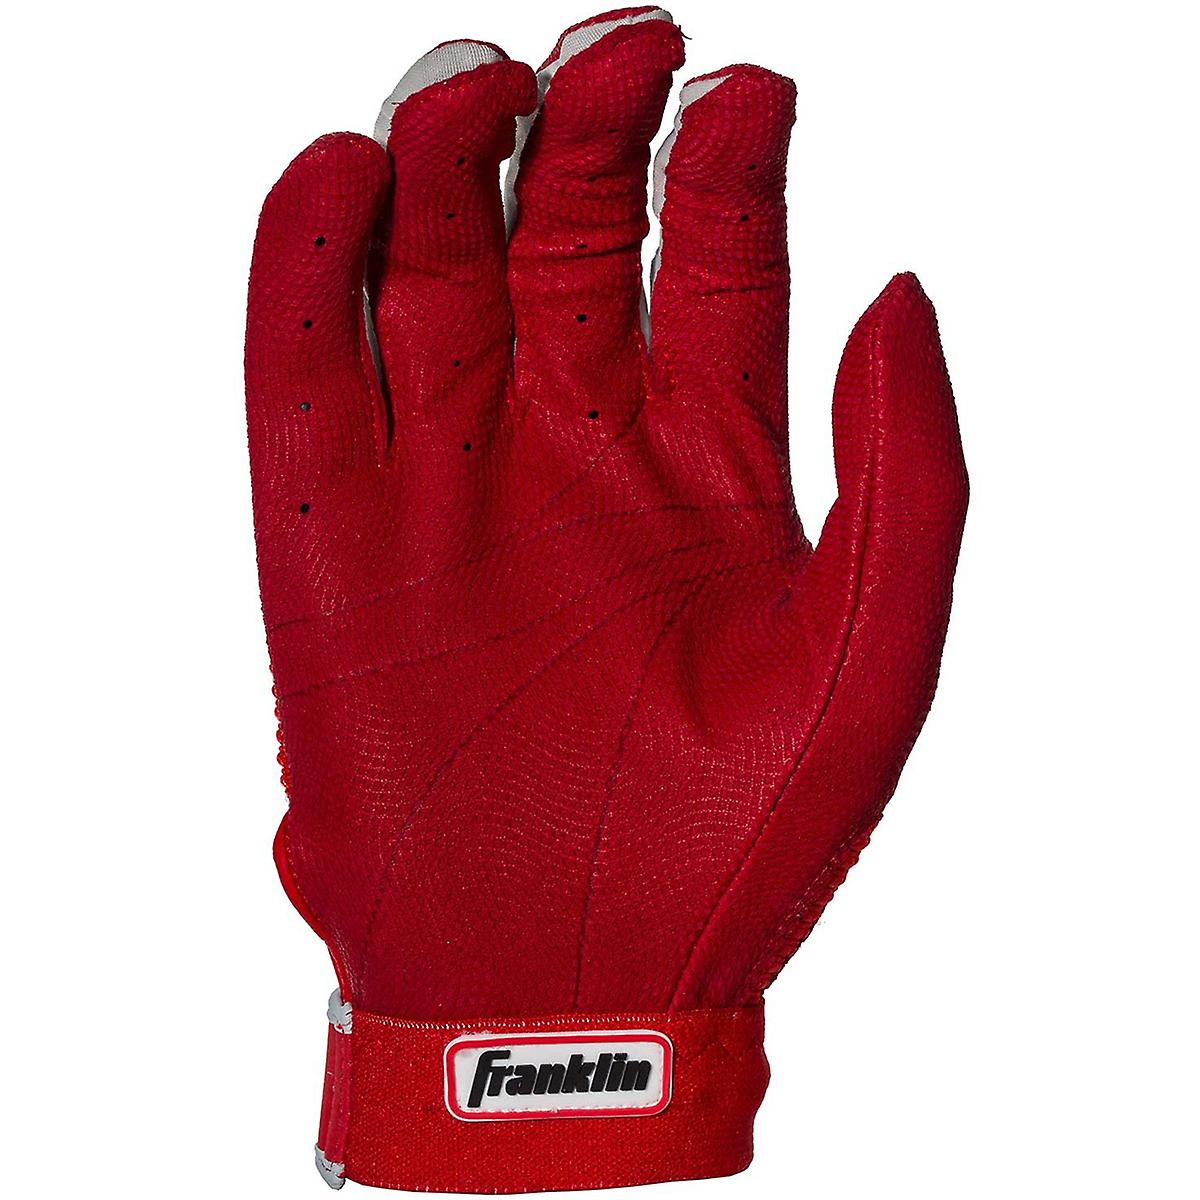 Franklin Adult Pro Classic MLB Batting Gloves - Red/Red